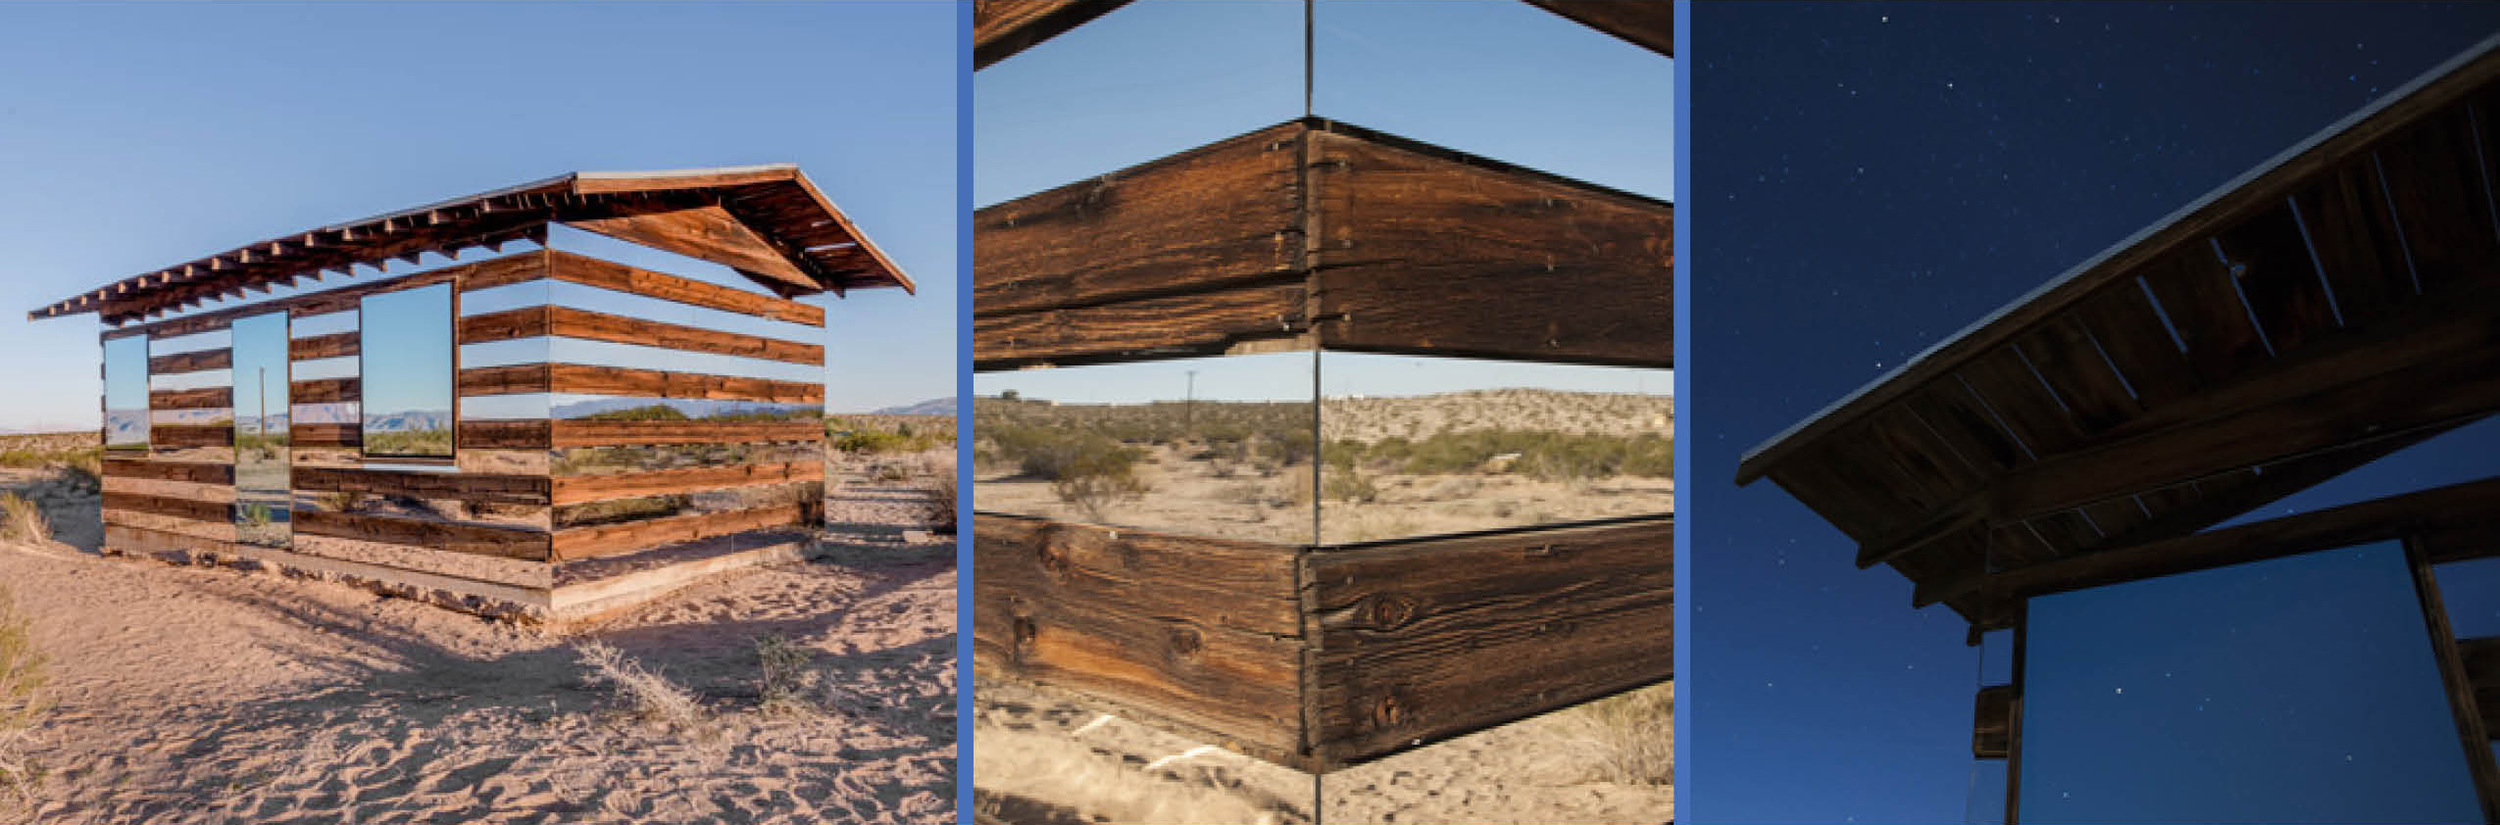 In the desert, which often times has monotonous stretches of repetitive features, camouflage can be powerful tool to blend in without disturbing the landscape. The Lucid Stead installation took and old cabin, which was a noticeable object in the empty landscape, and transformed into a much lighter structure though use of mirrors that reflect the surrounding desert make the cabin appear with a mirage-like quality.